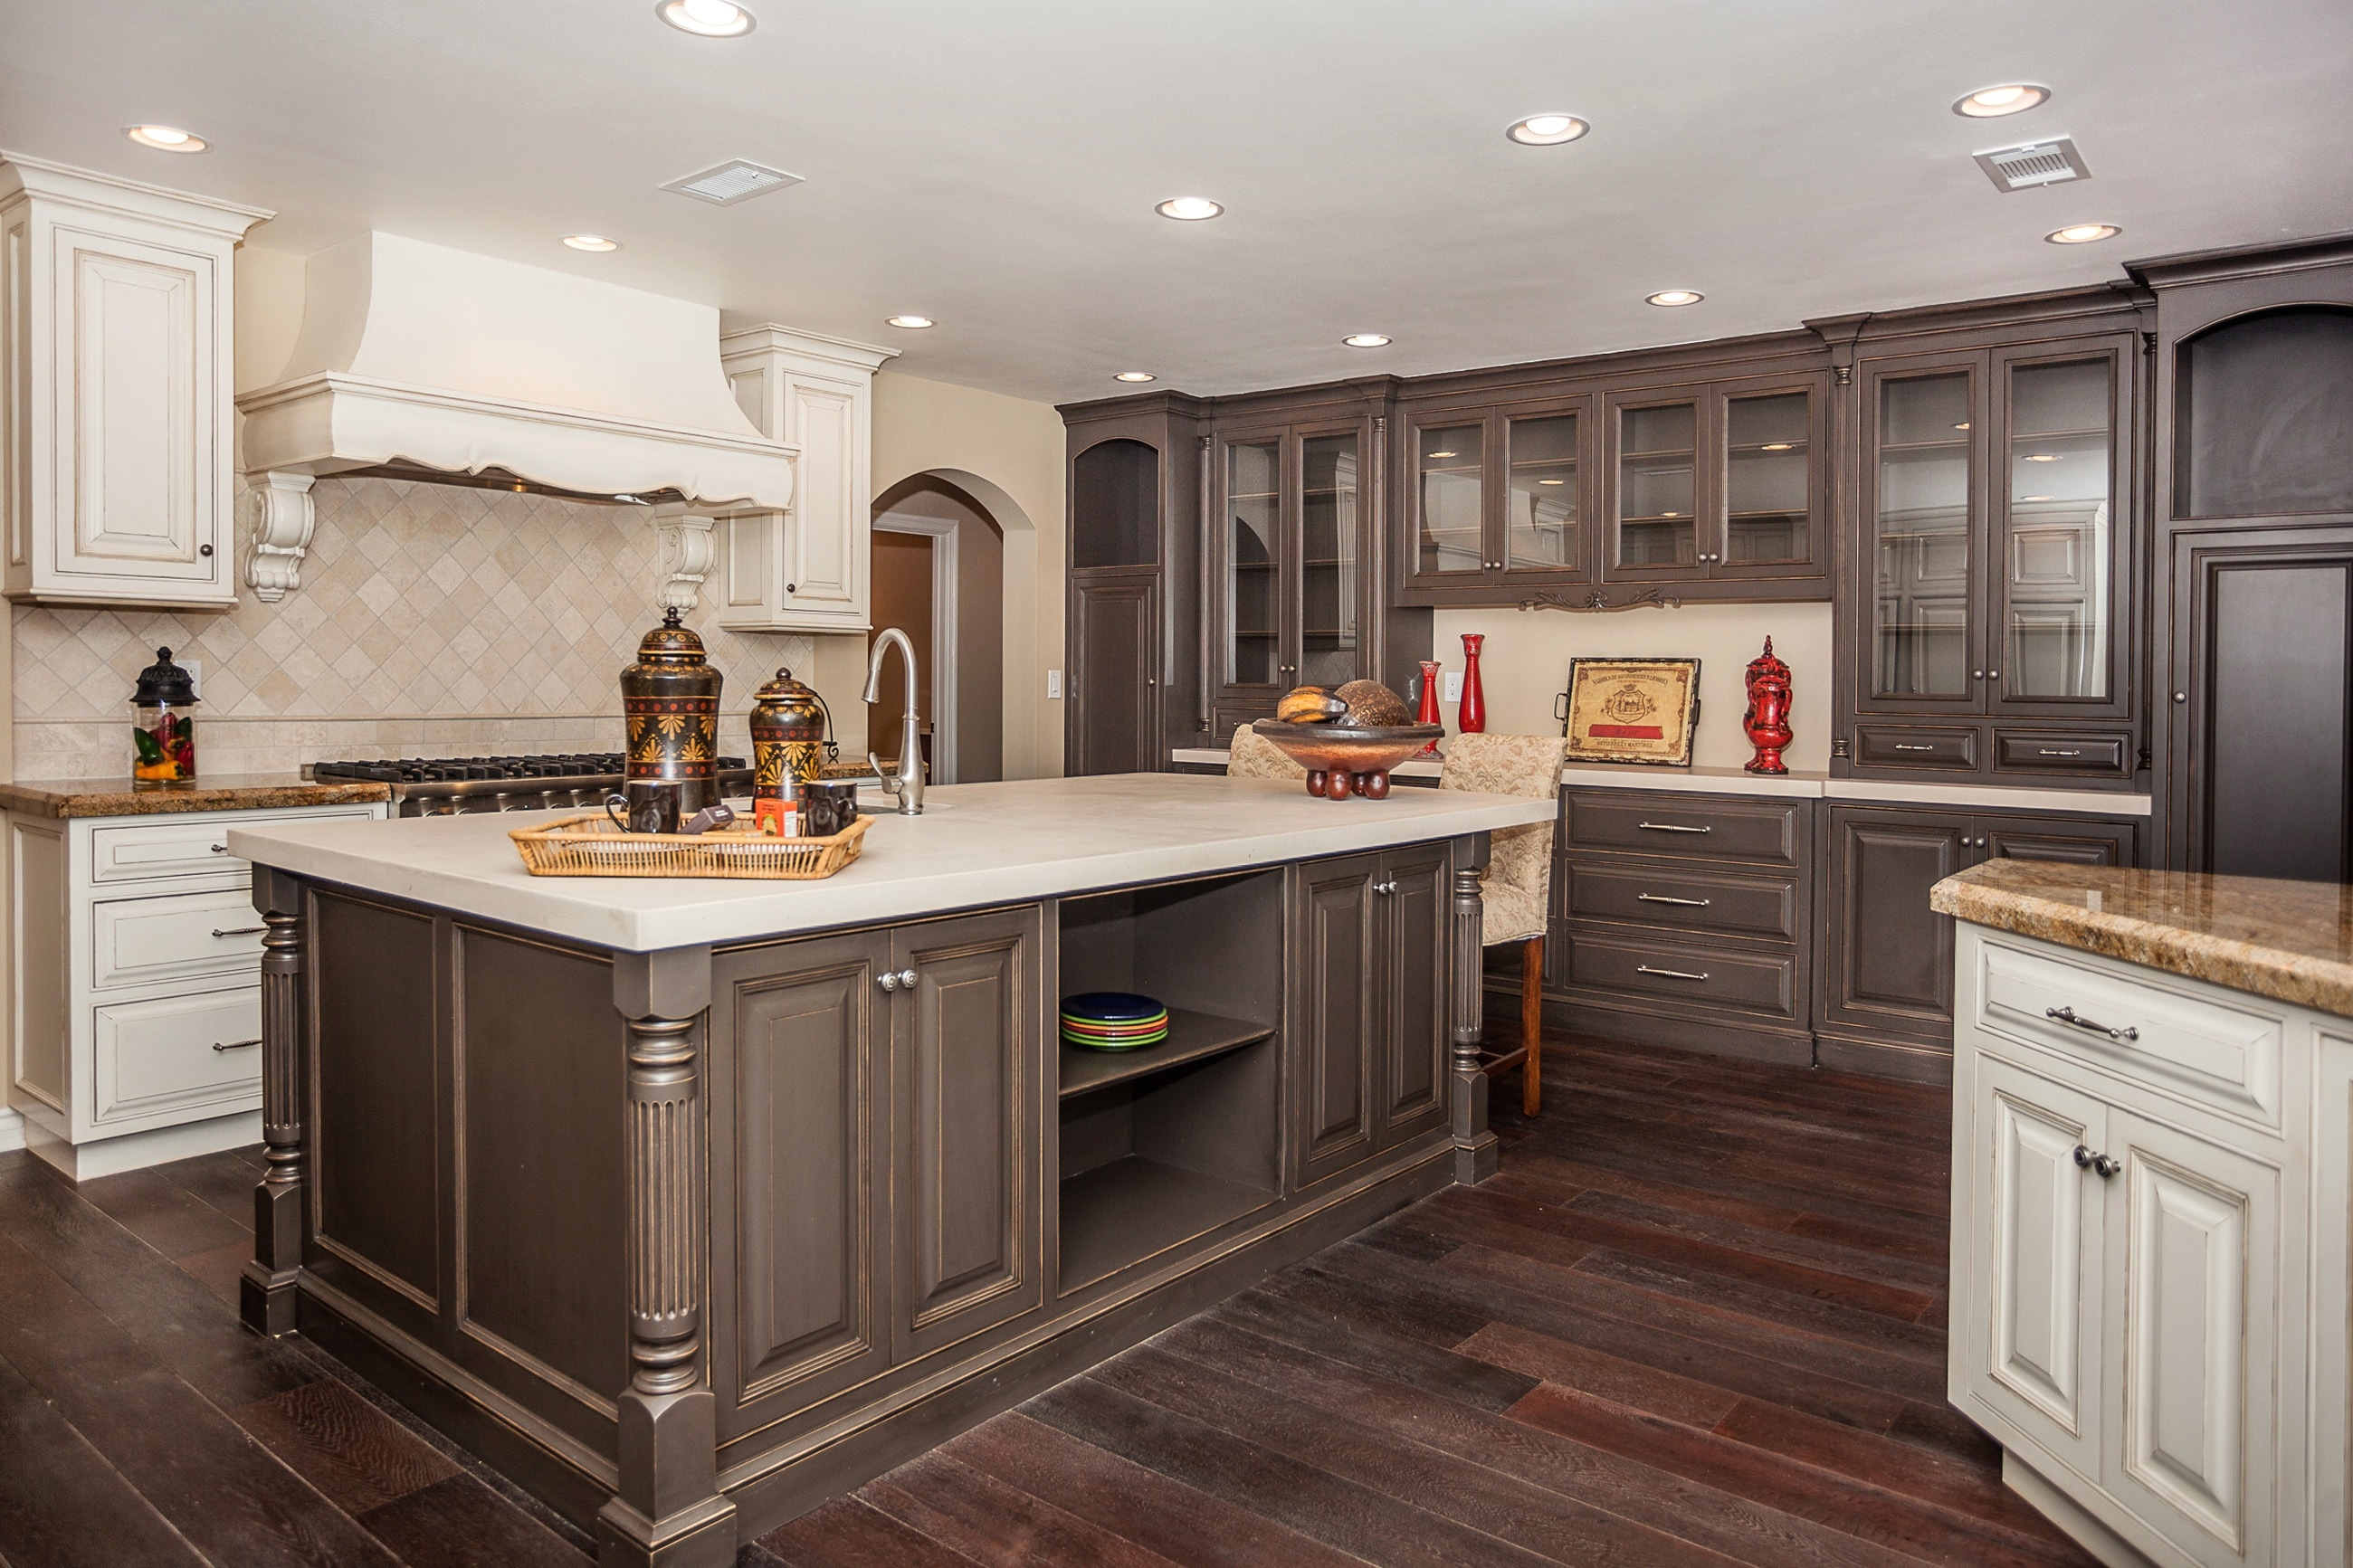 White Kitchen Cabinets With Cherry Wood Floors2600 X 1733